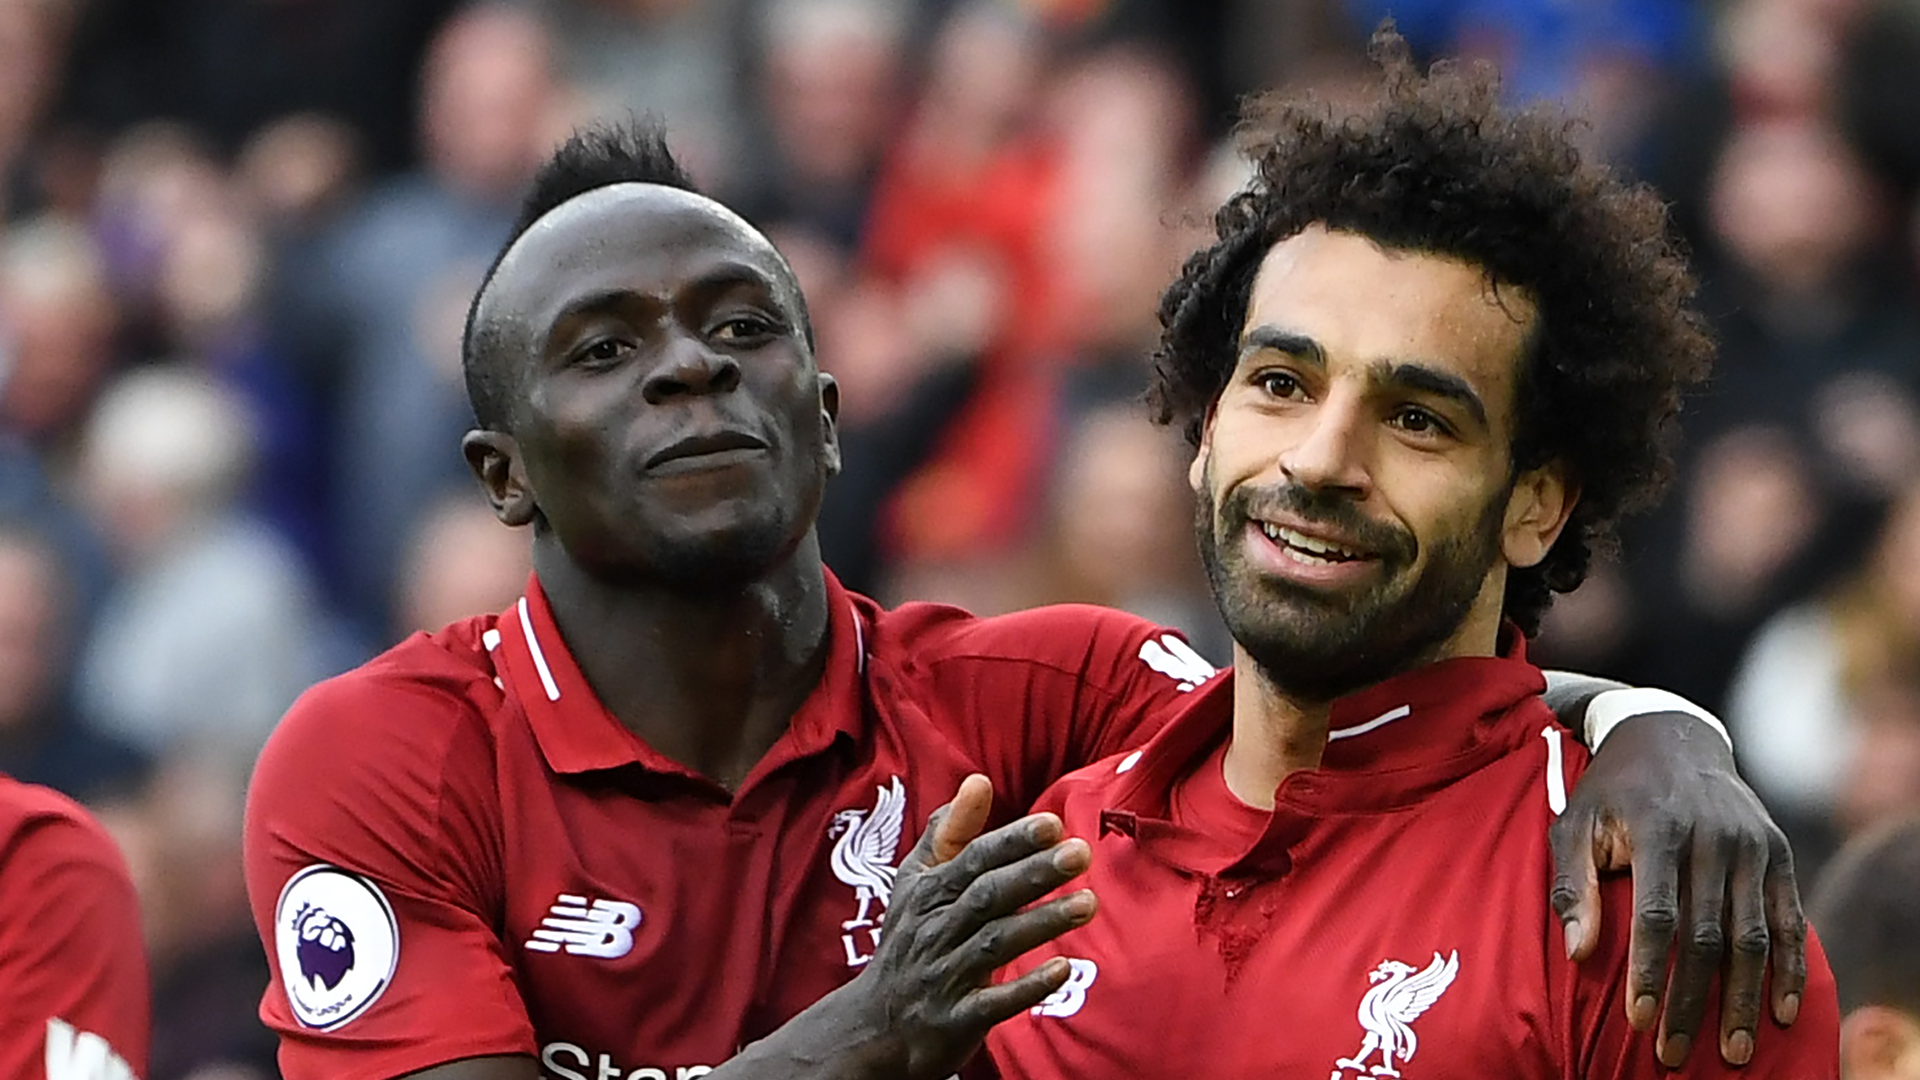 Liverpool News: Jurgen Klopp Concedes Sadio Mane Call Was